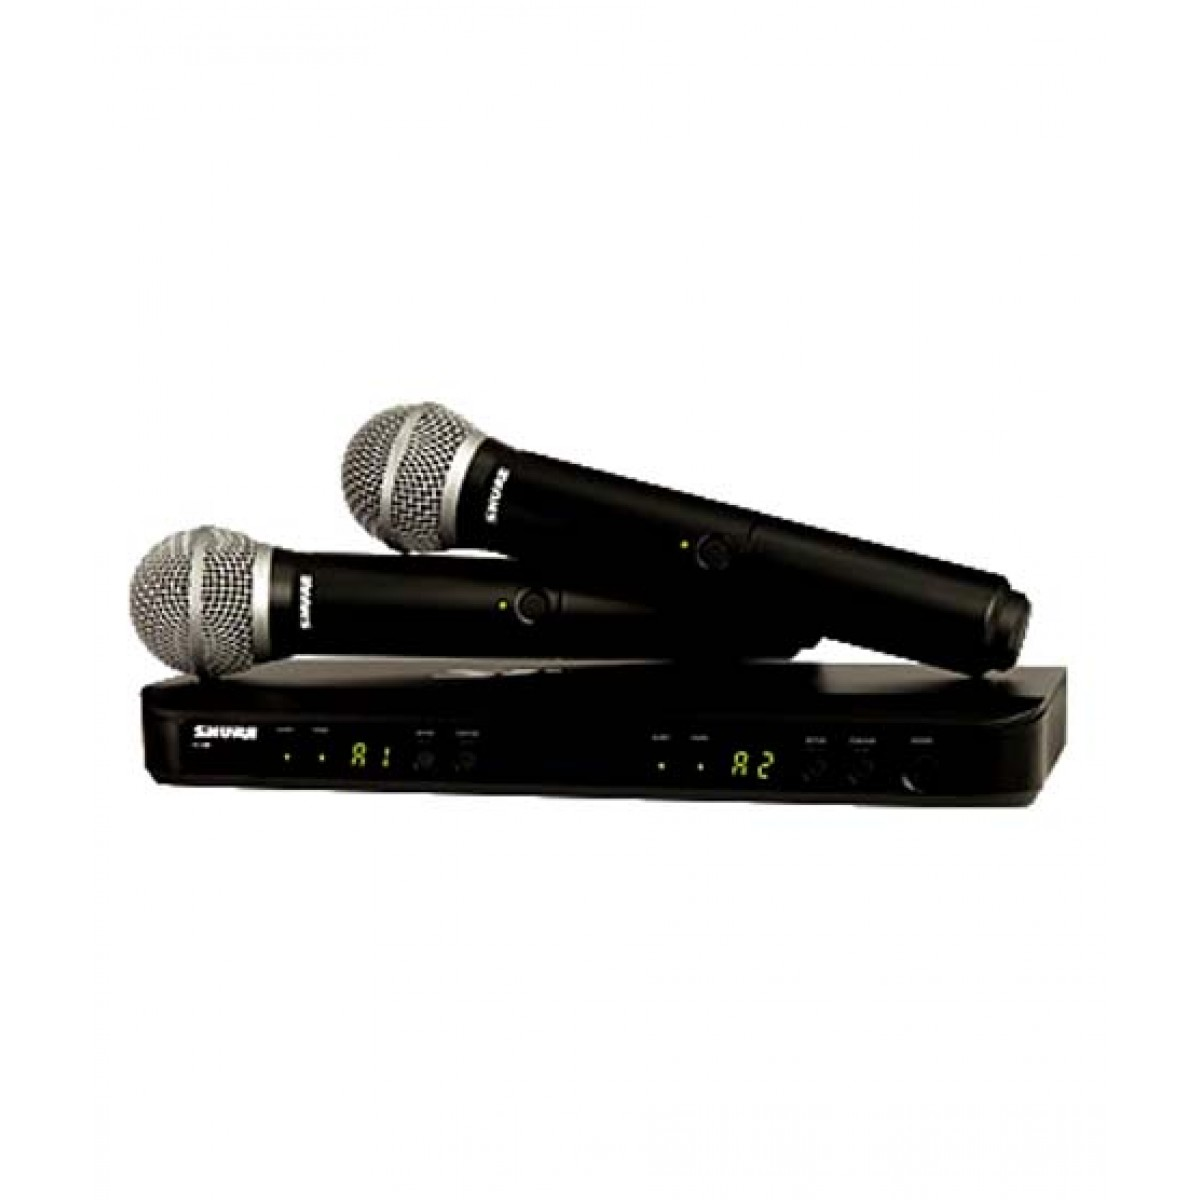 Shure Dual Channel Handheld Wireless System (BLX288/PG58)